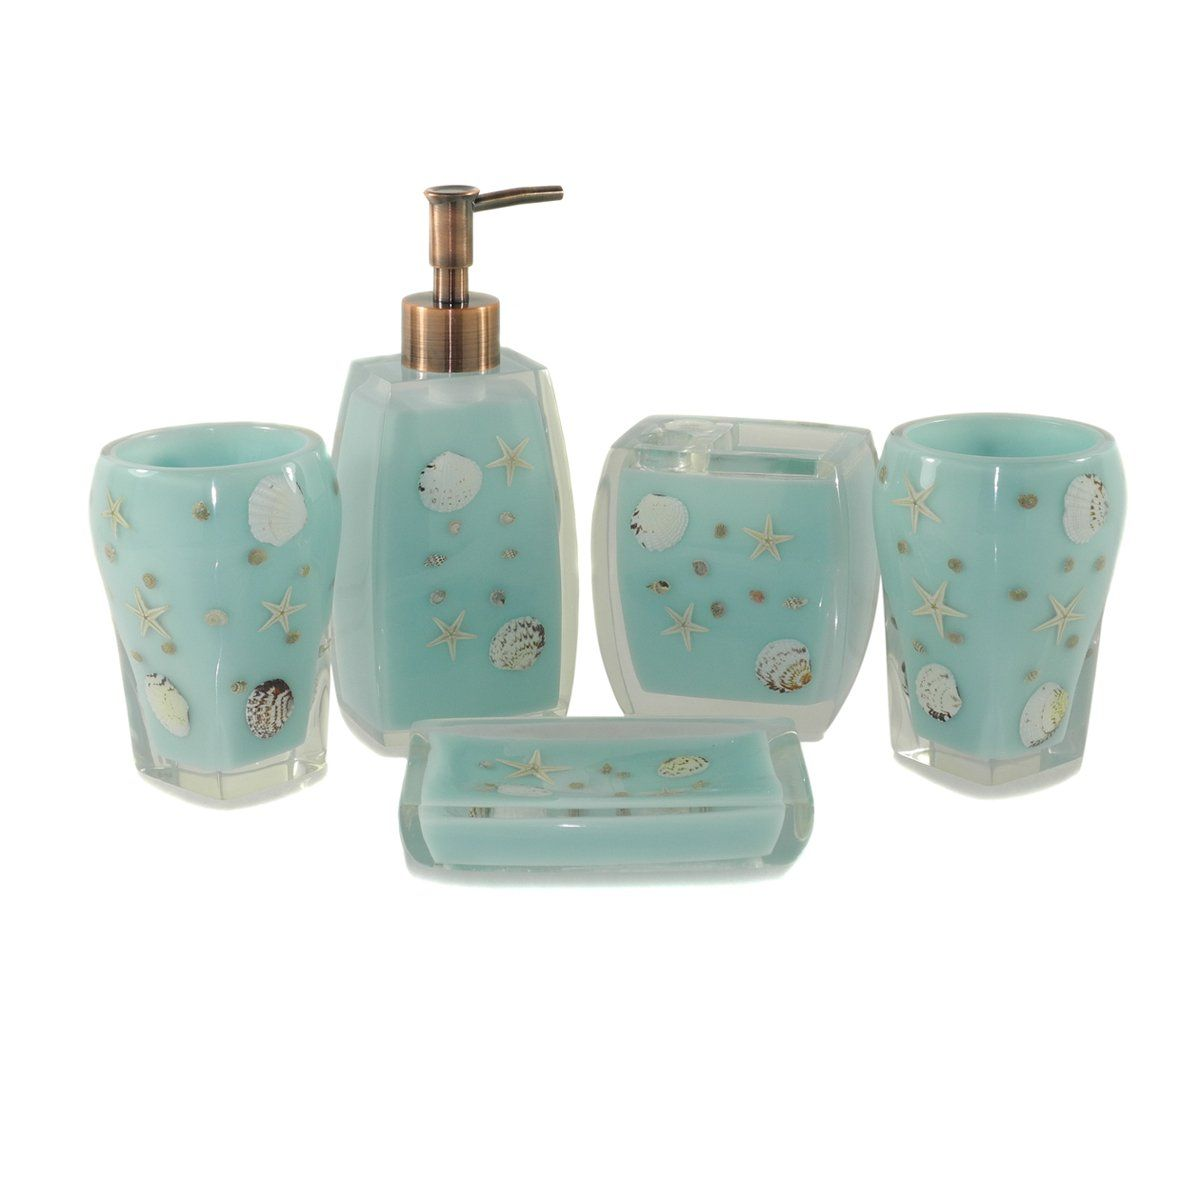 Good Amazon.com   Dream Bath Blue Starfish Bath Ensemble 5 Piece Bathroom  Accessories Set Kids Bath Accessories Soap Dispenser/Toothbrush  Holder/Tumbler/Soap ...